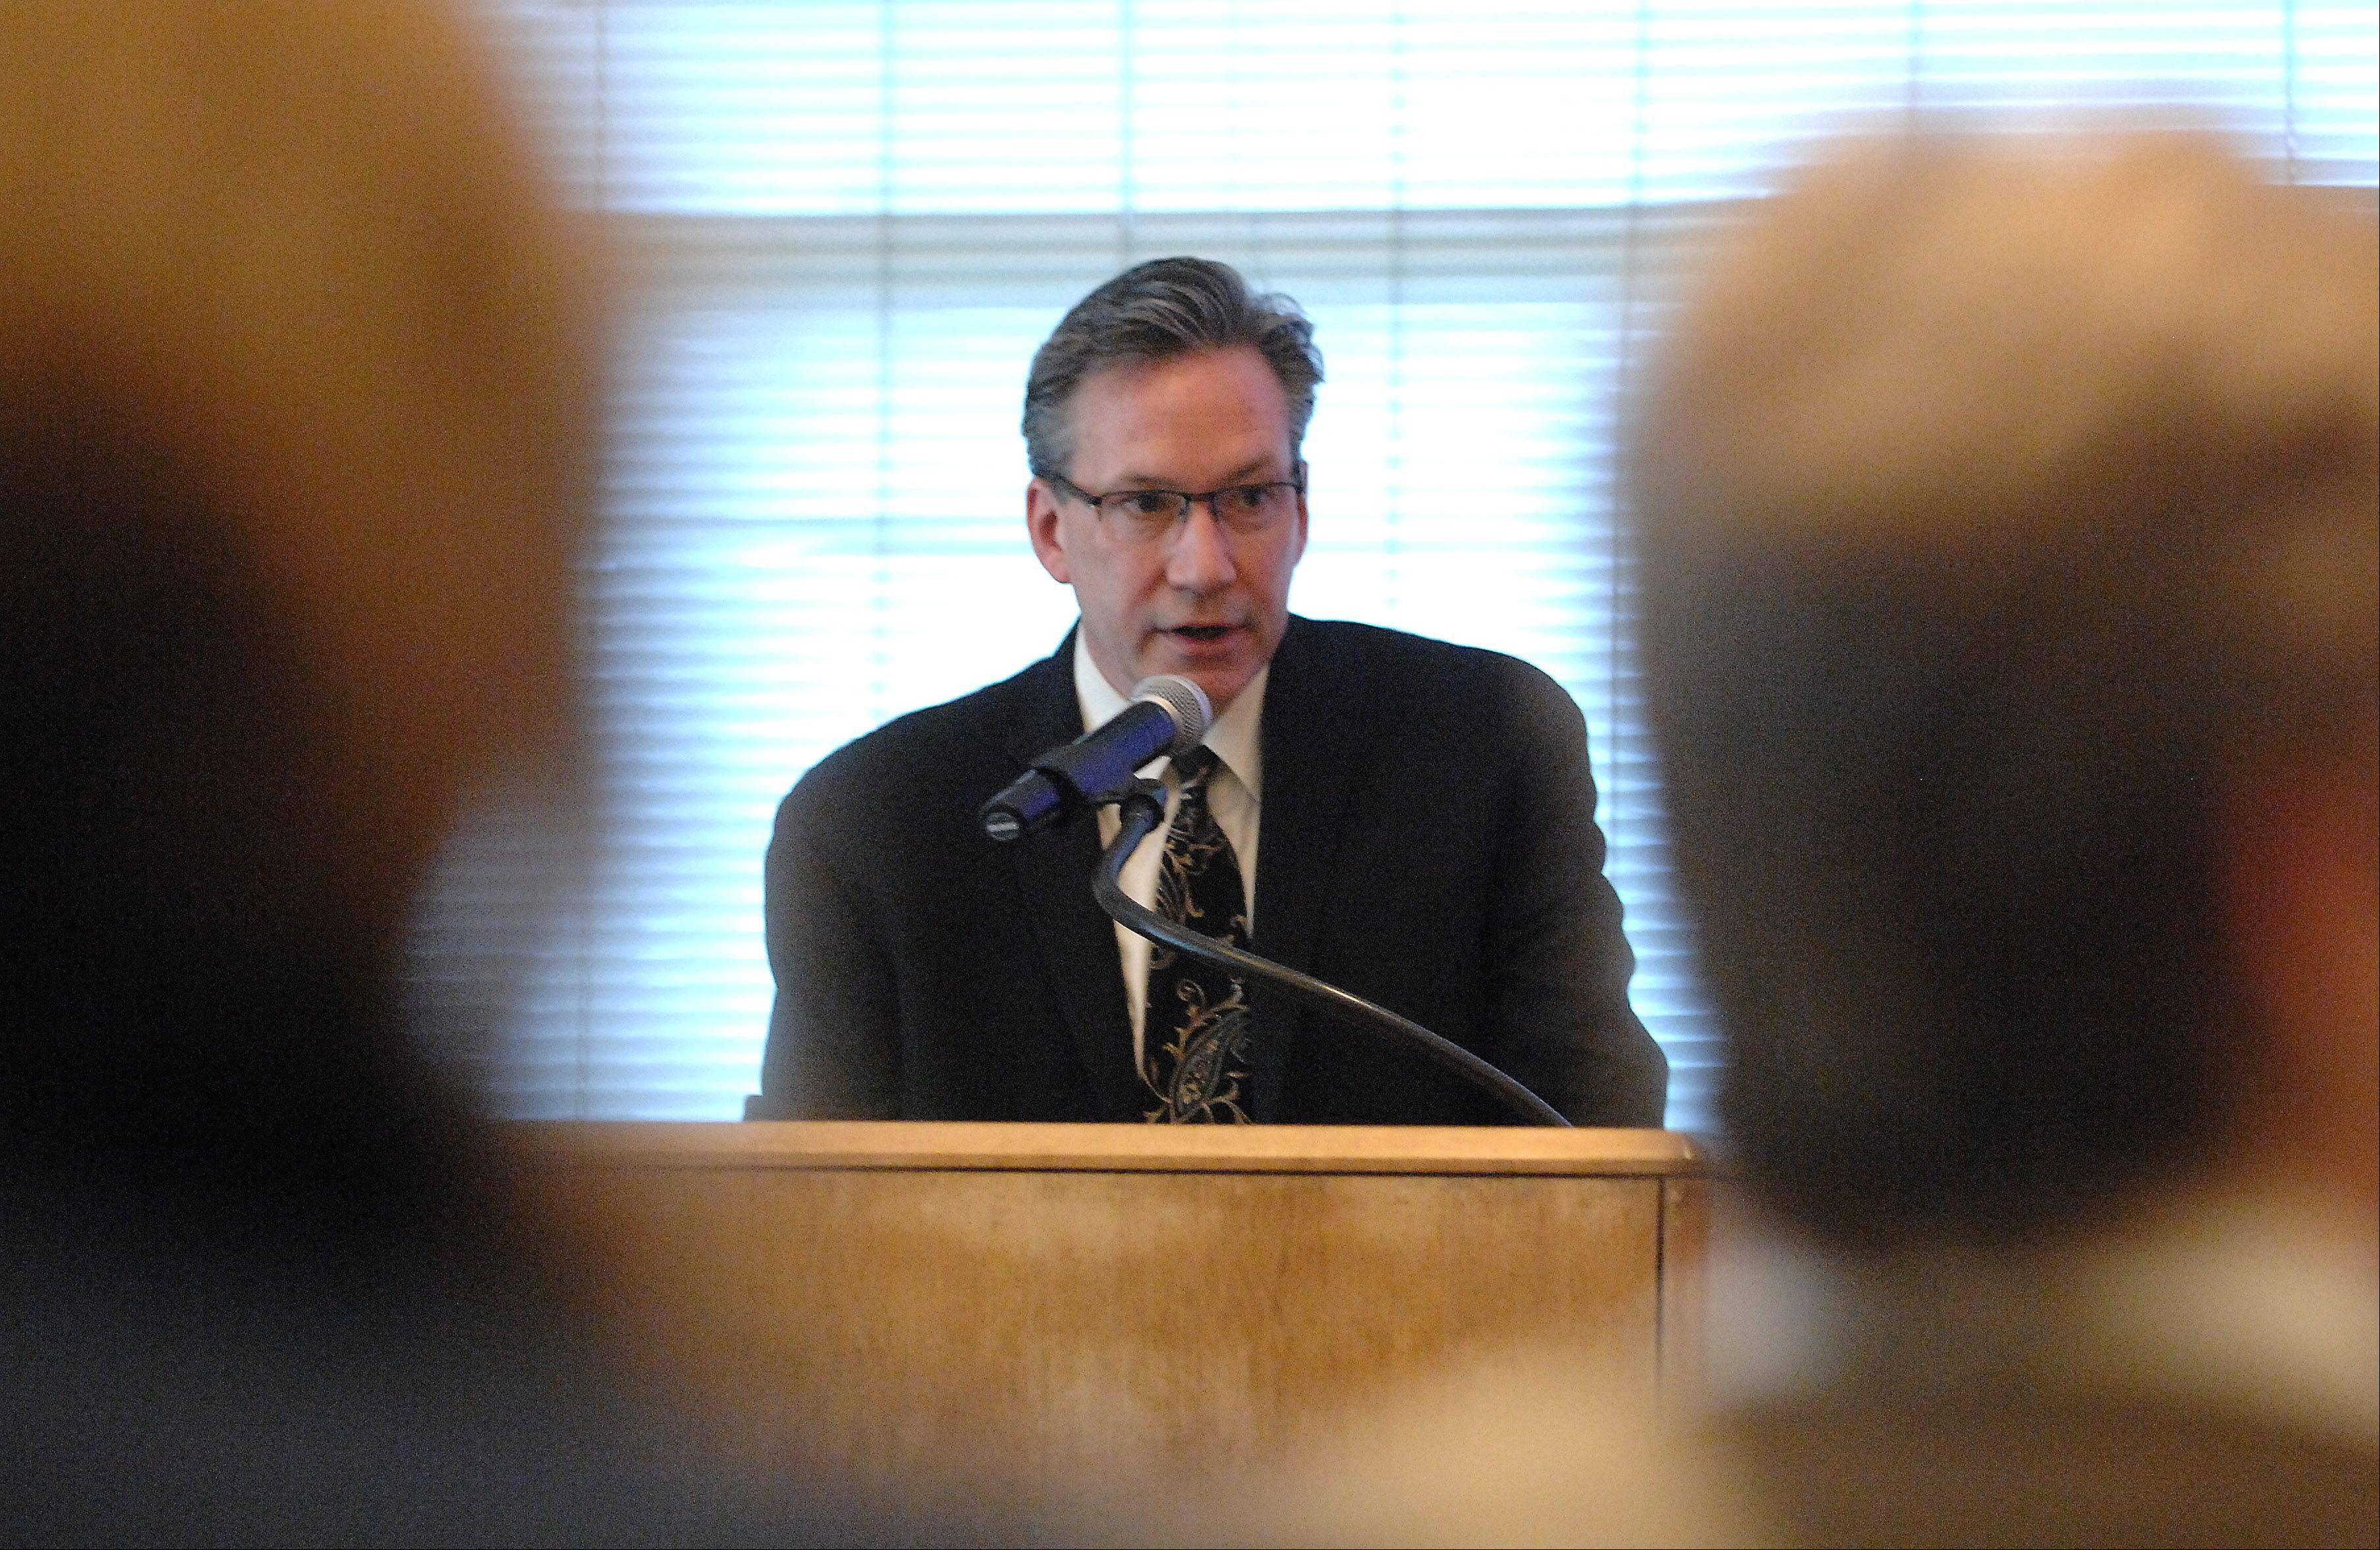 John Heinrich, director of diagnostics and oncology services for Centegra Health System in Crystal Lake, explains his opposition to a planned Sherman Hospital-Advocate Health Care merger during a hearing Monday conducted by the Illinois Health Facilities and Services Review Board Monday in Elgin.